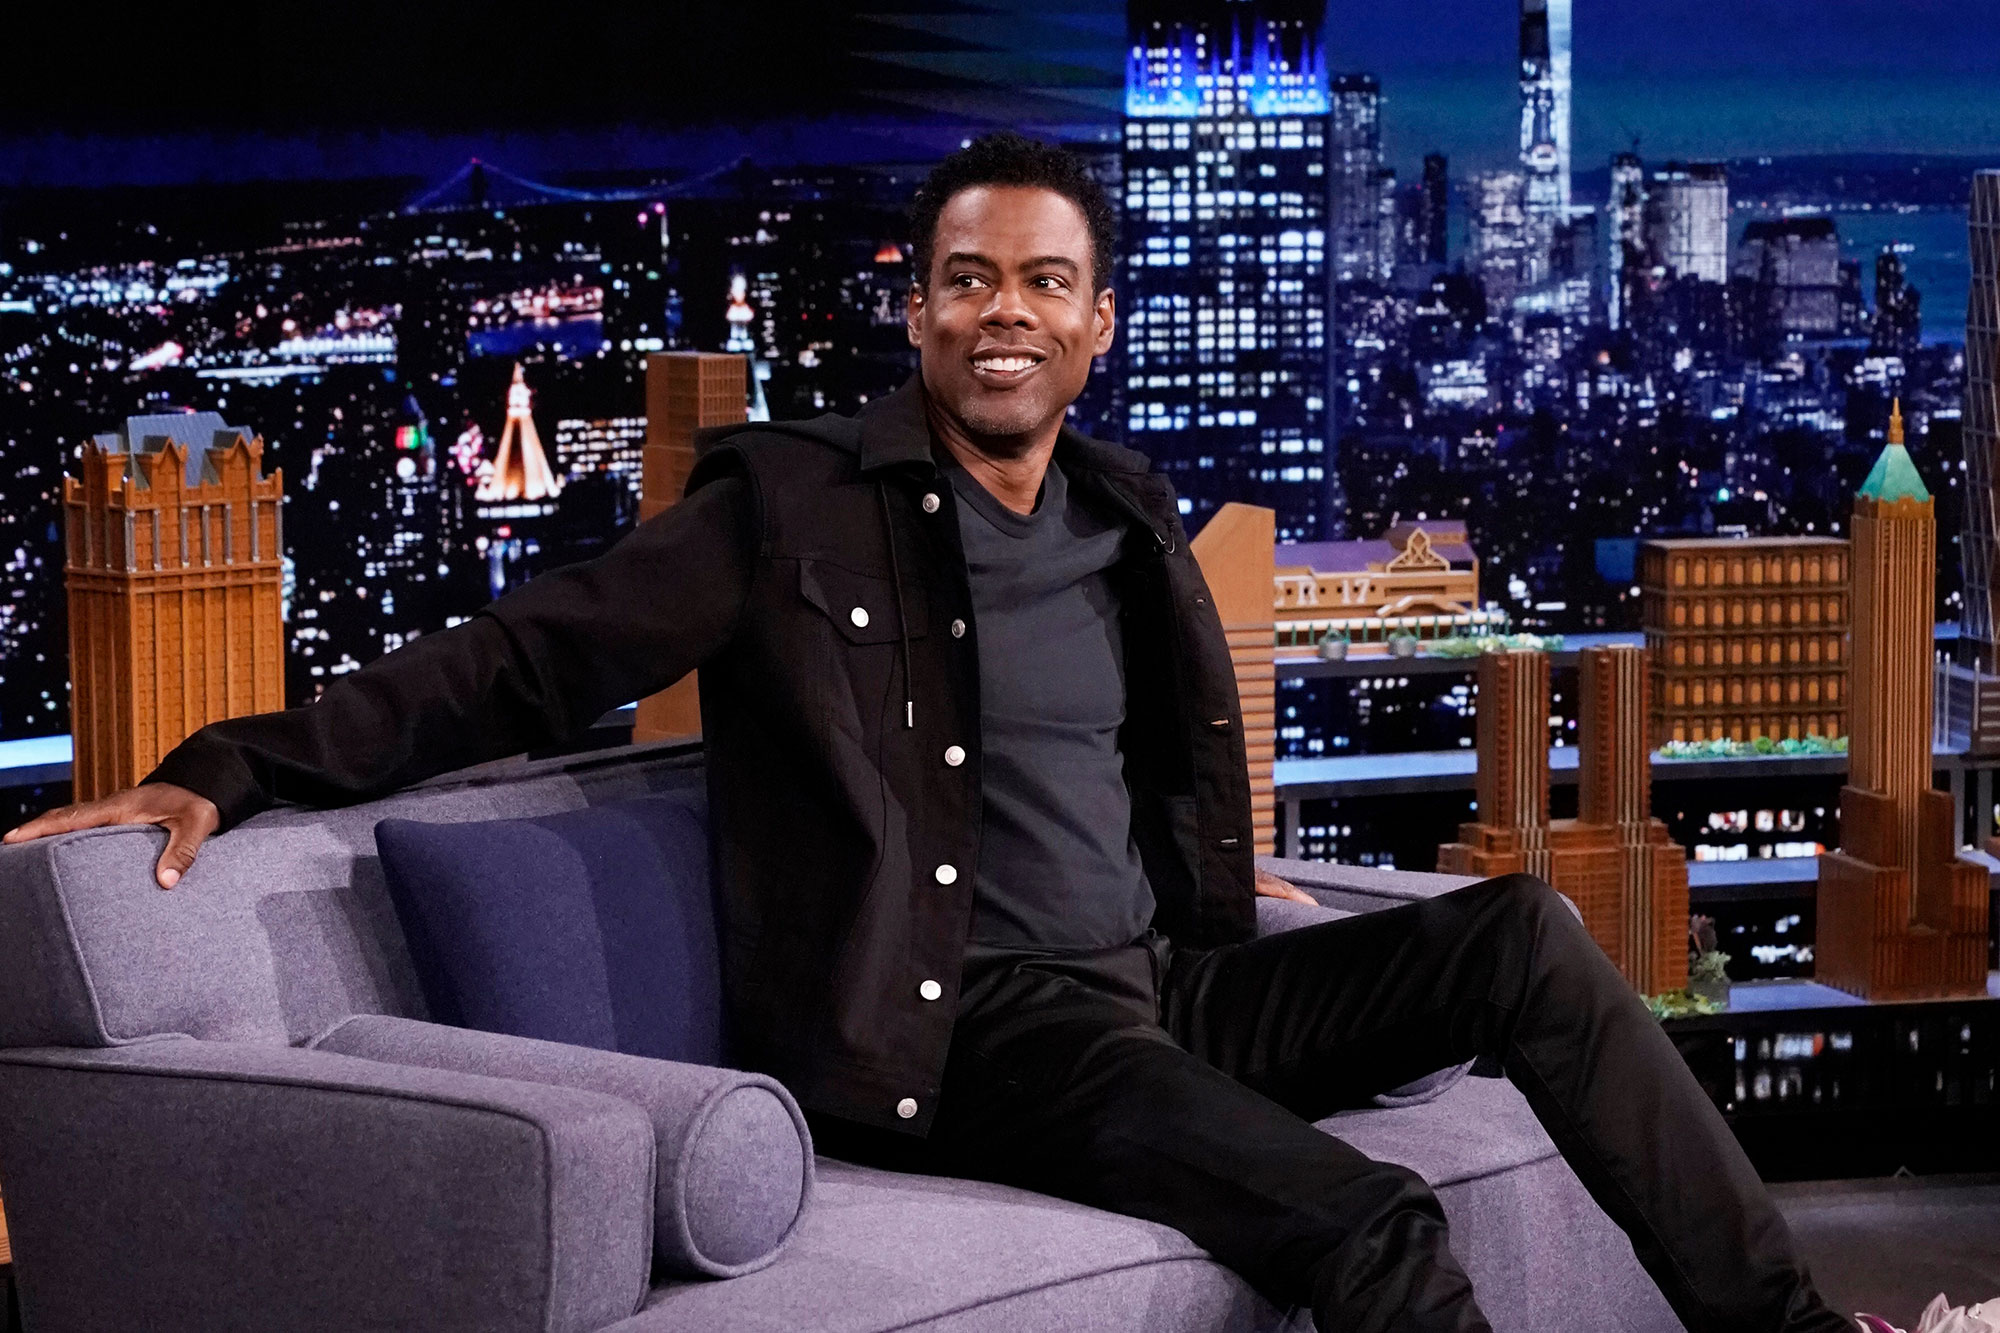 THE TONIGHT SHOW STARRING JIMMY FALLON -- Episode 1465 -- Pictured: Comedian Chris Rock during an interview on Tuesday, May 18, 2021